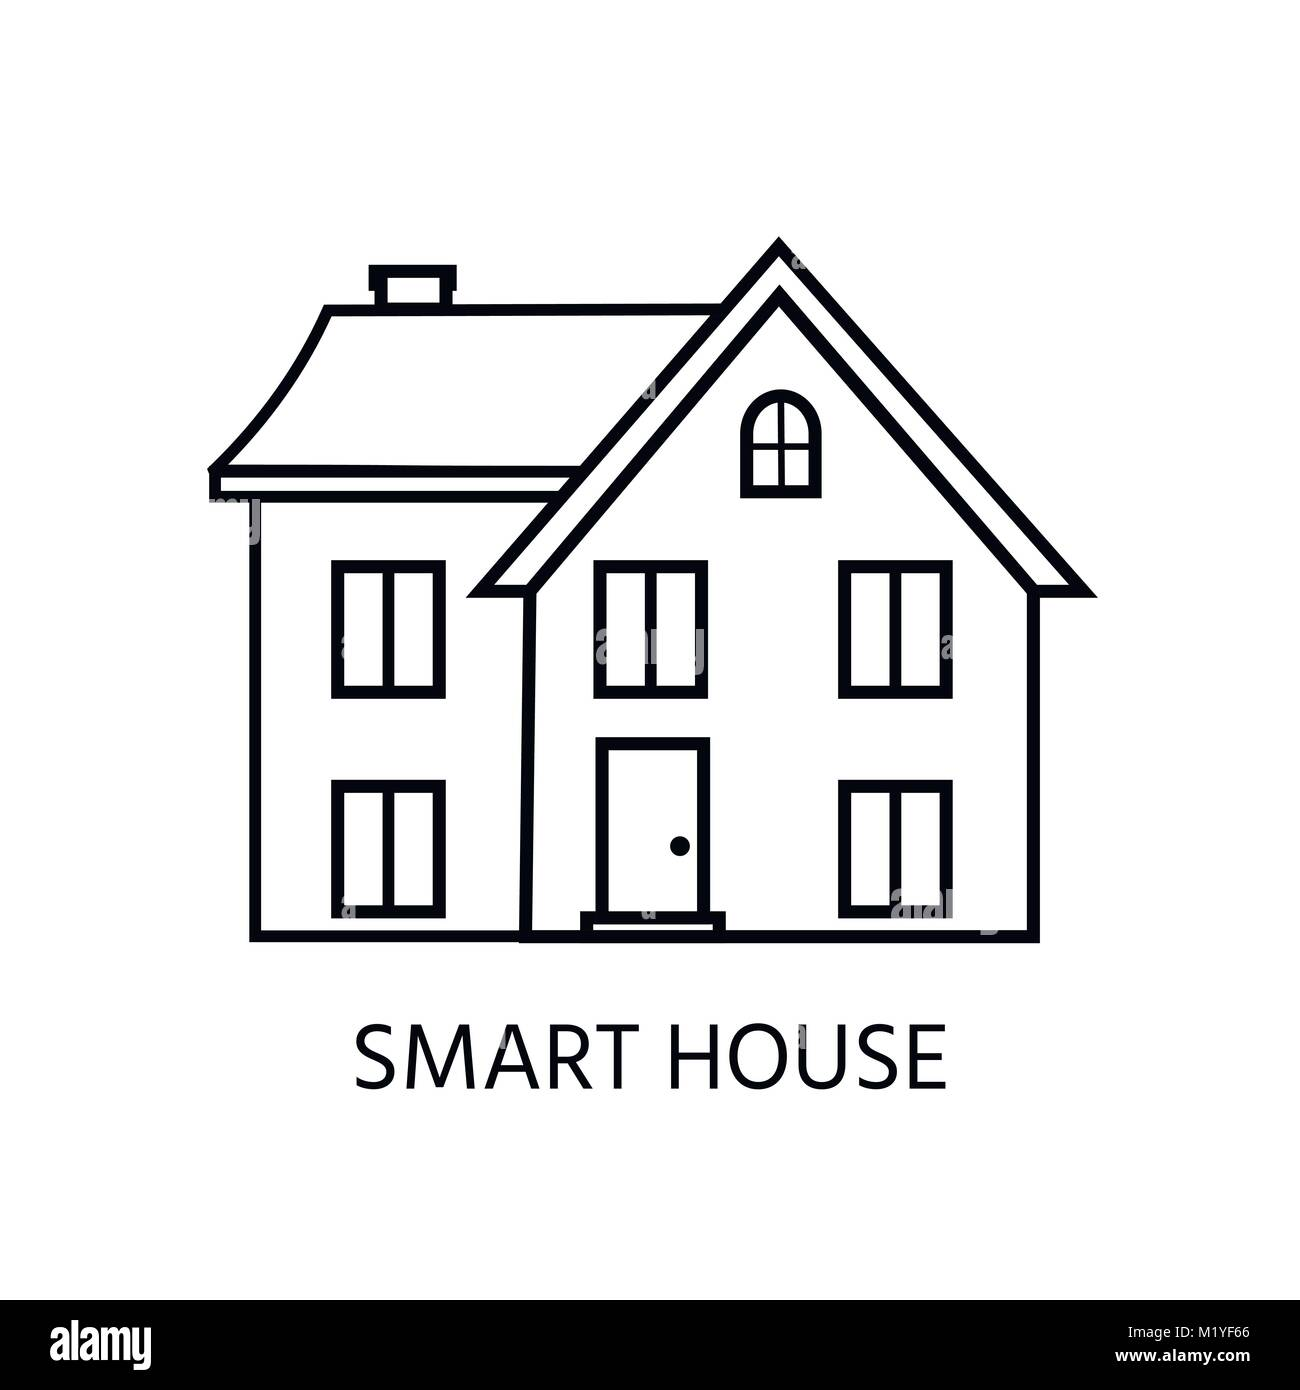 Modern line icon with cozy home, house, cottage. Smart building.  Flat design urban landscape. - Stock Image